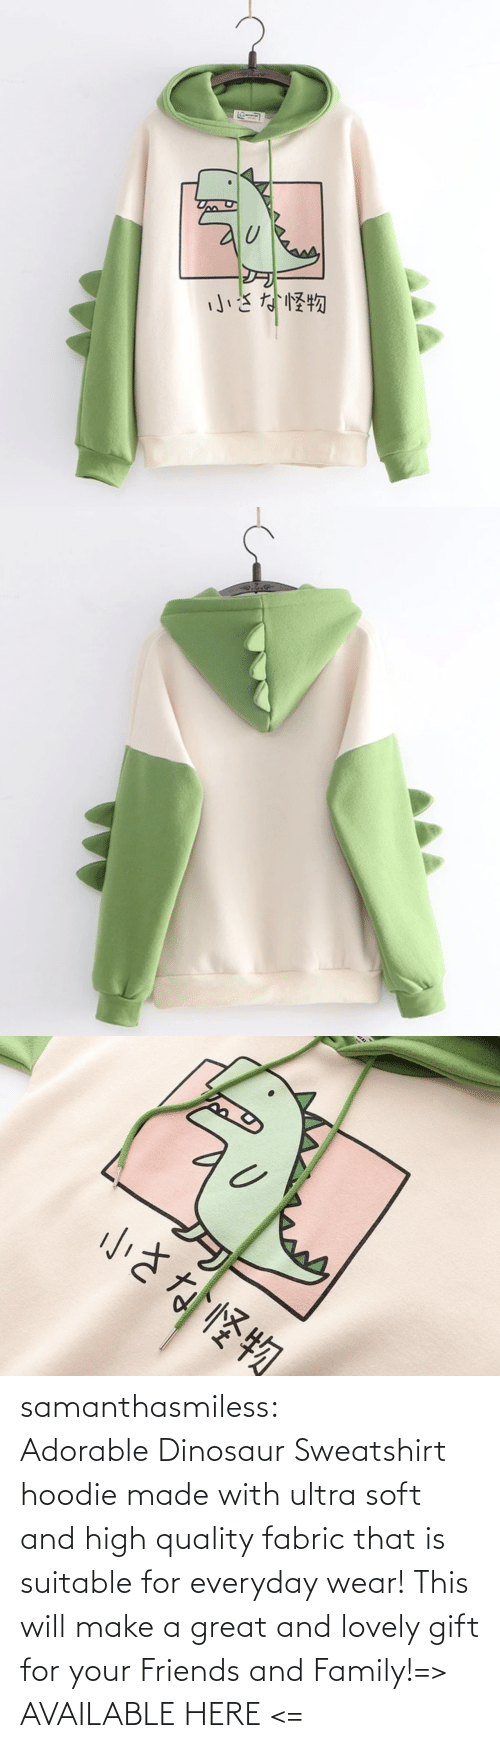 sweatshirt: samanthasmiless:  Adorable Dinosaur Sweatshirt hoodie made with ultra soft and high quality fabric that is suitable for everyday wear! This will make a great and lovely gift for your Friends and Family!=> AVAILABLE HERE <=